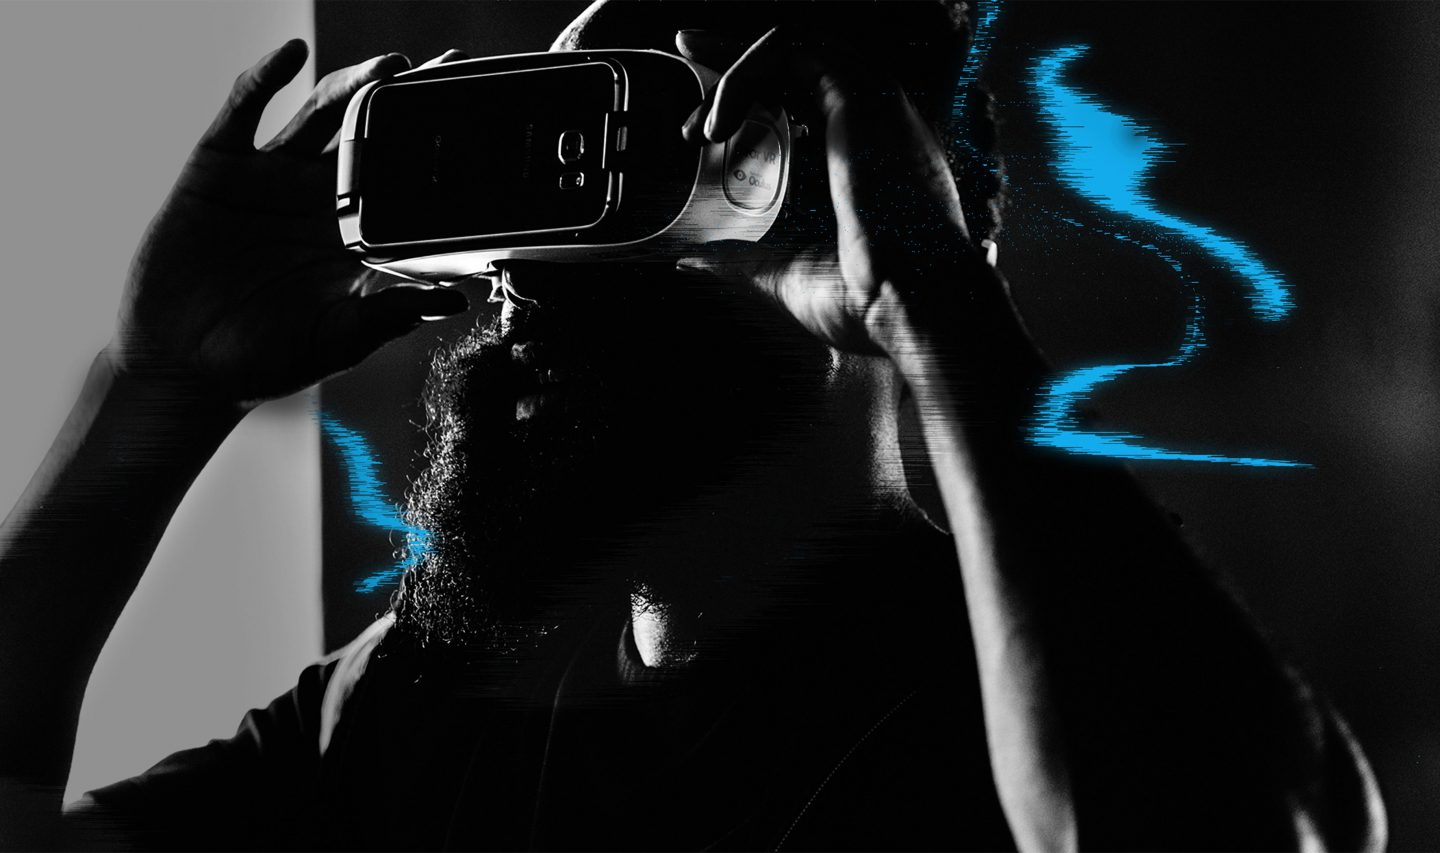 James Harden watching through VR glasses, Virtual Reality, coding, hackathon, digital, technology, innovation, adidas, GamePlan A